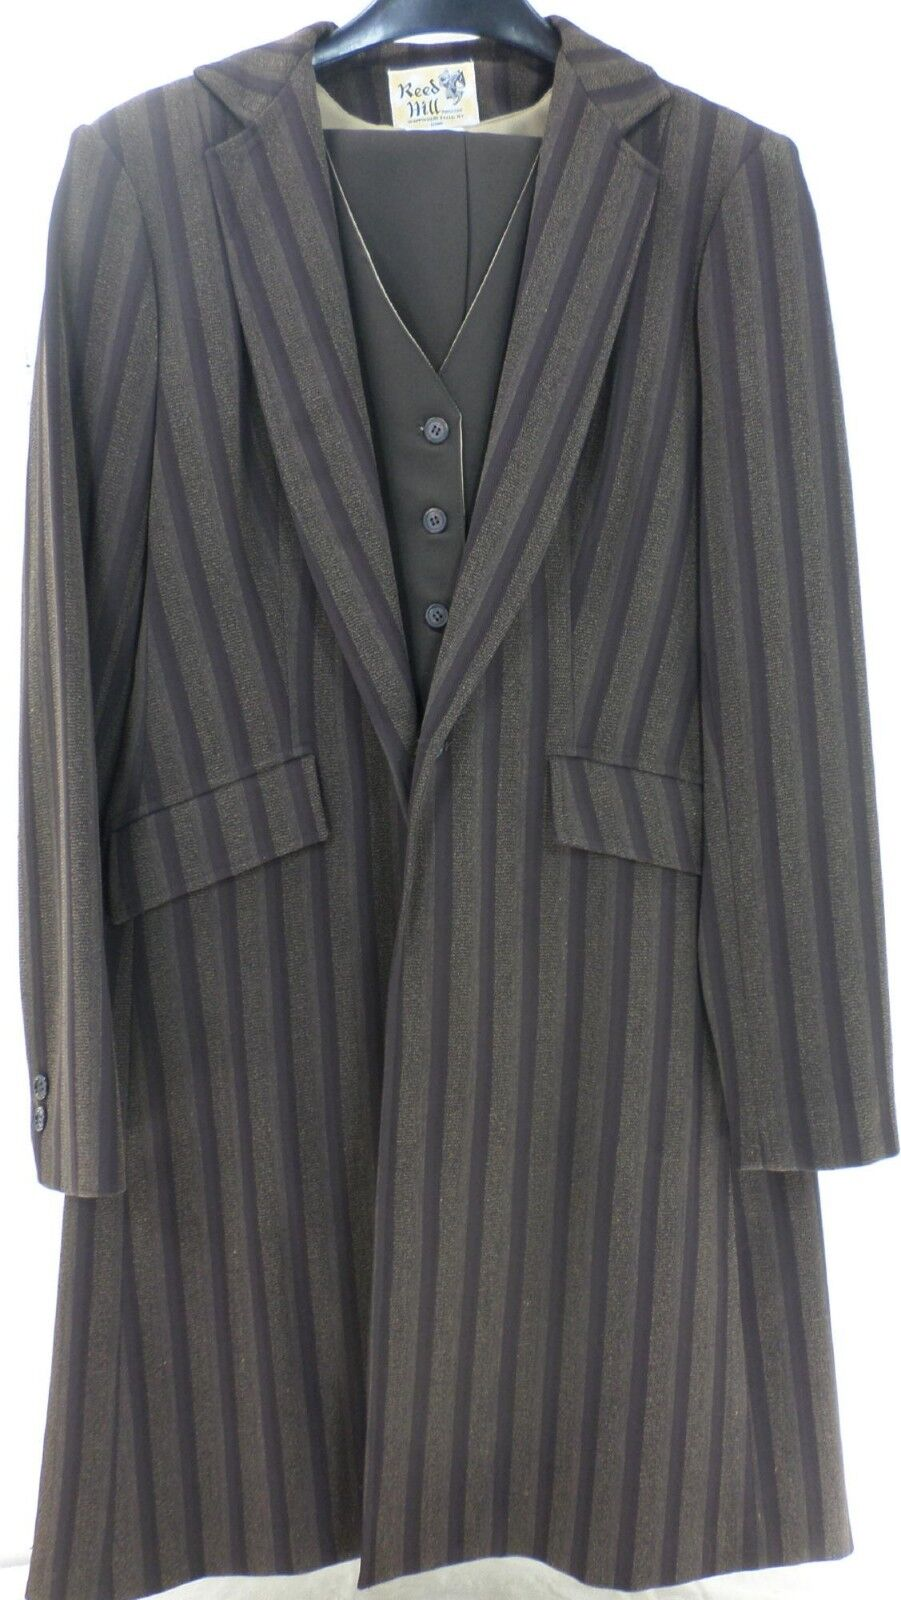 Reed Hill Saddleseat Ld 3p suit Brown Coordinate  poly size 20 - USA